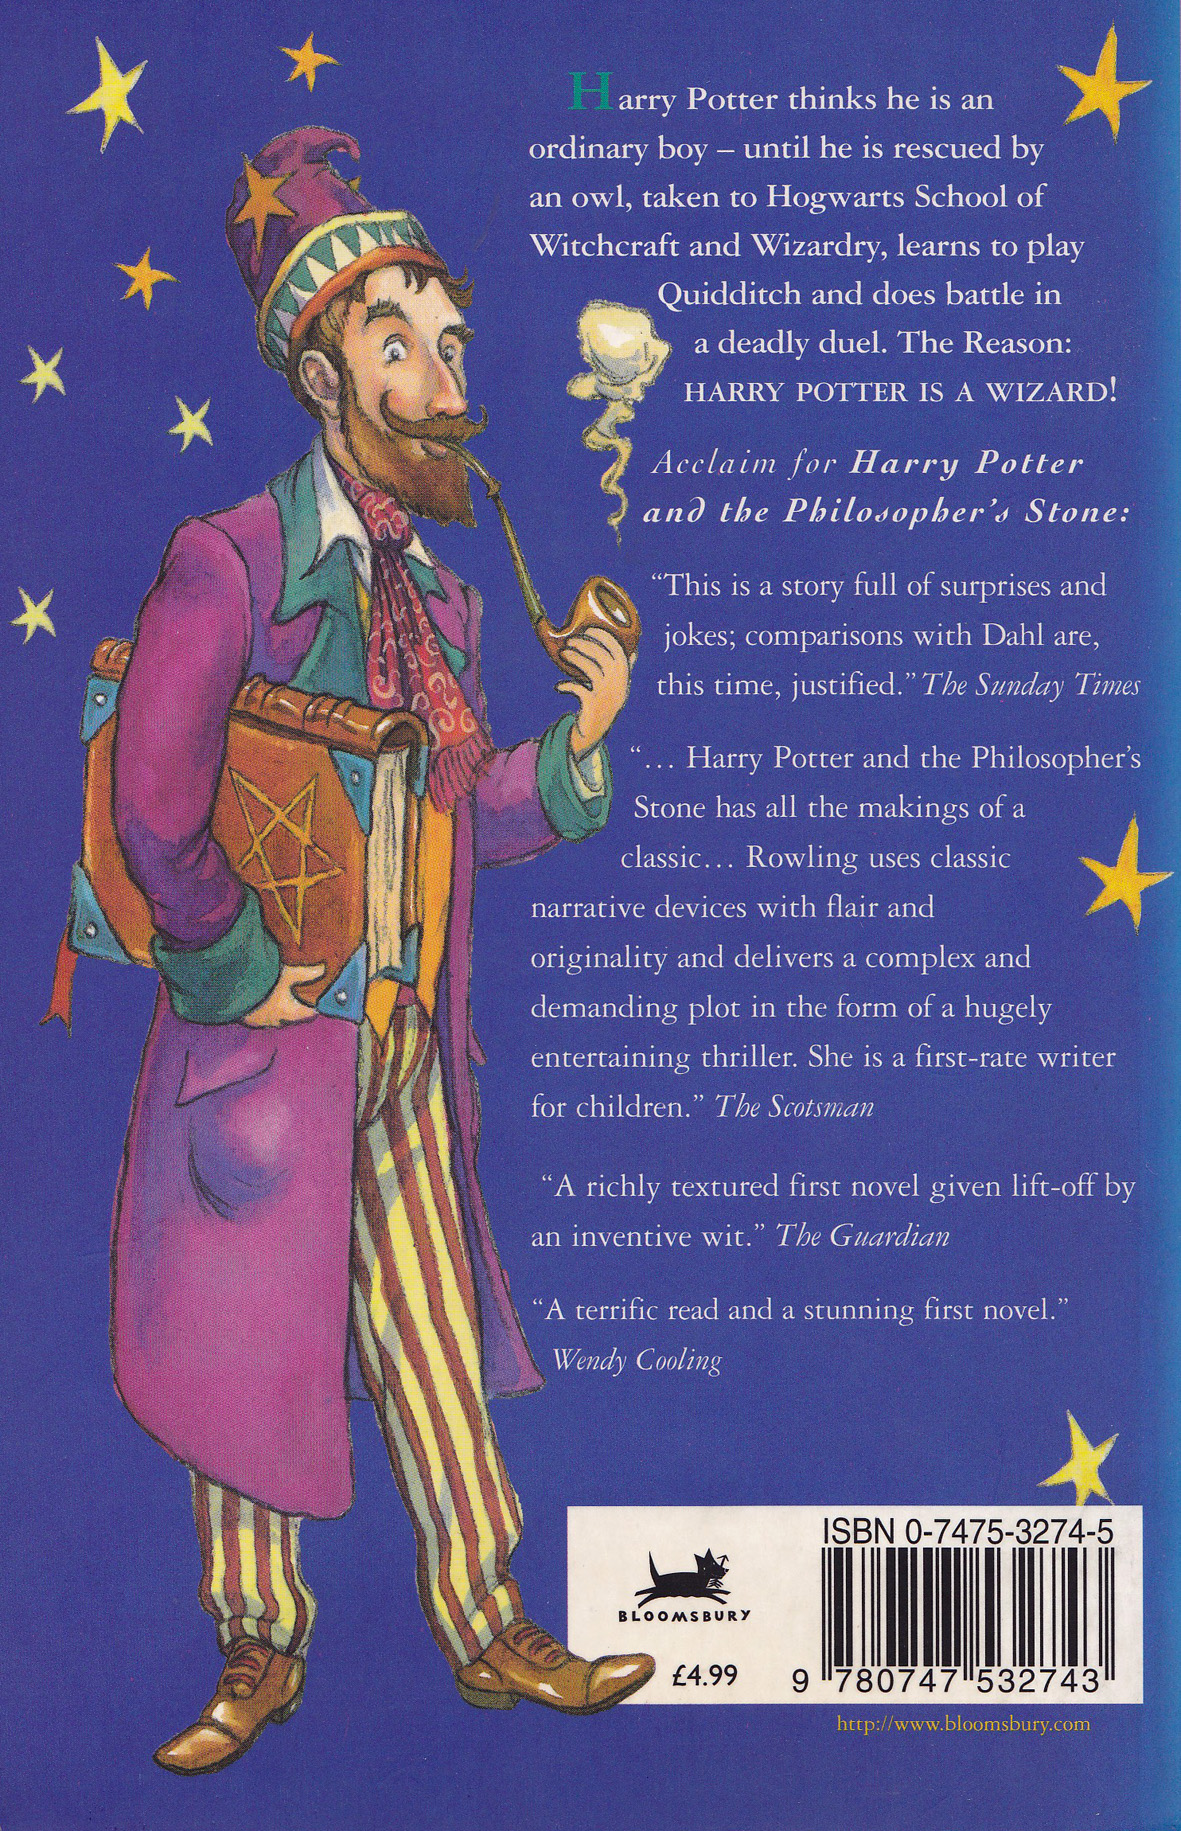 harry-potter-back-cover.jpg